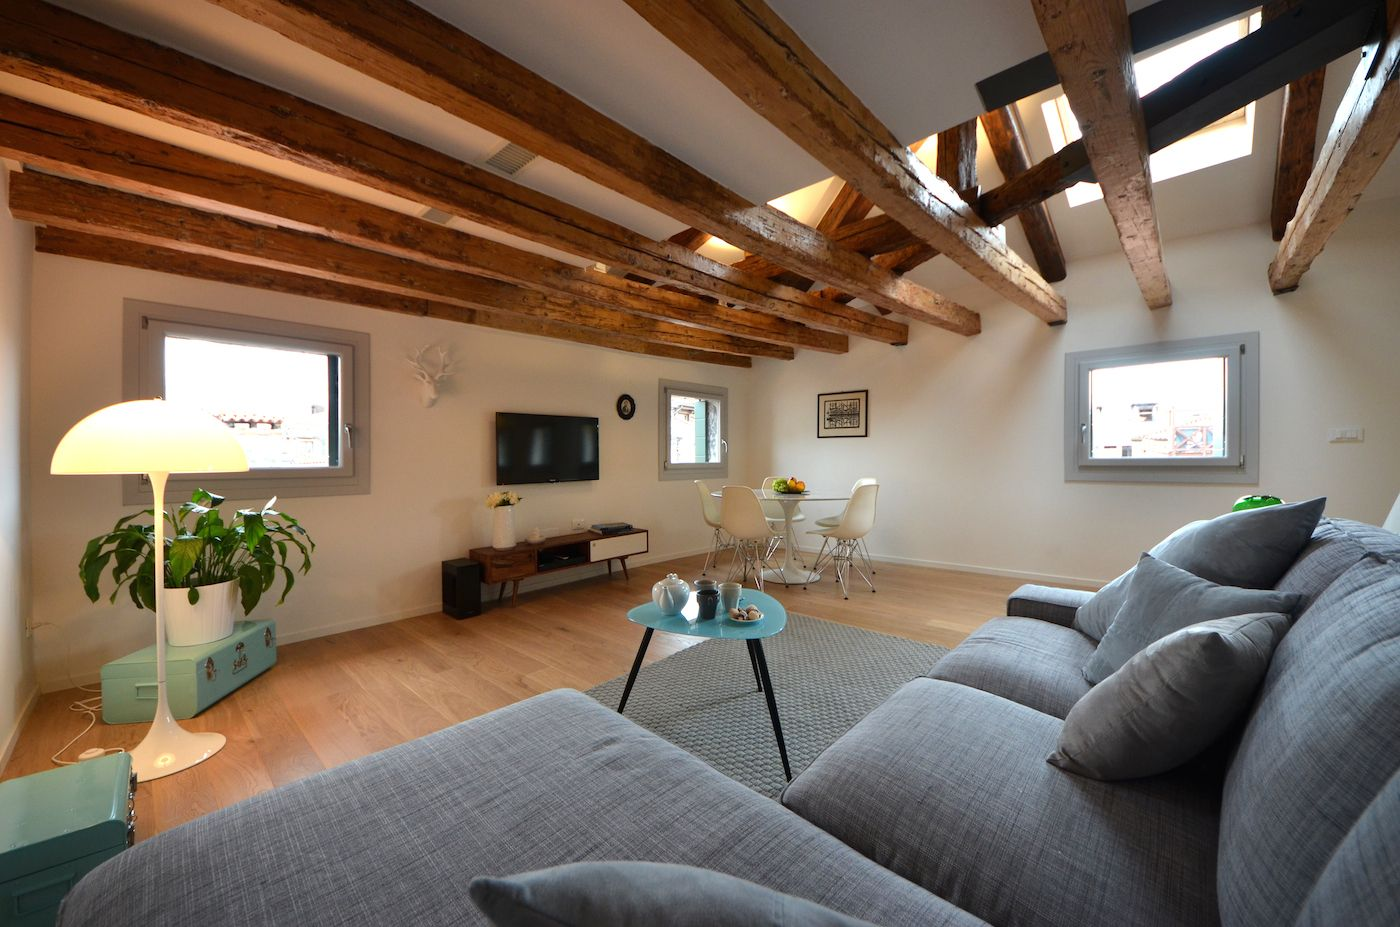 sitting on the comfortable sofa you can see the rooftops of Venice through the many windows